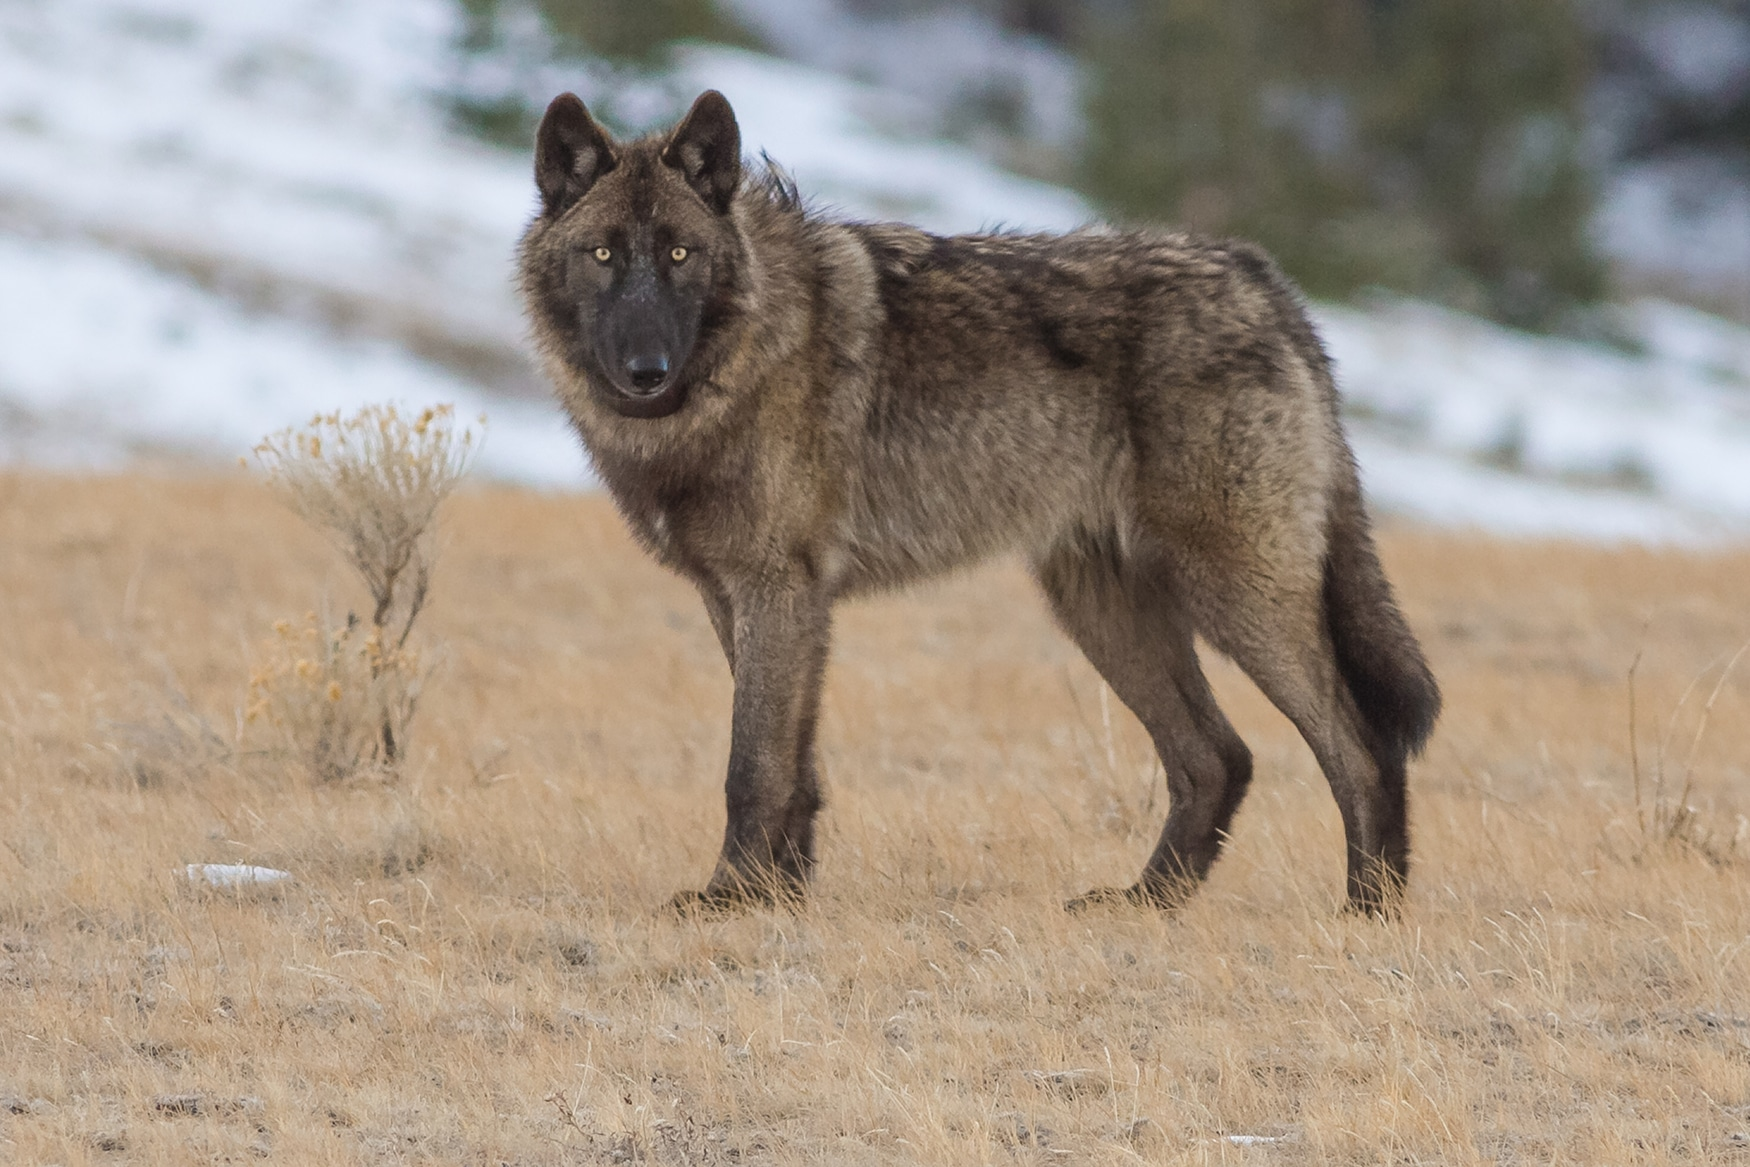 A wolf stares at the camera.